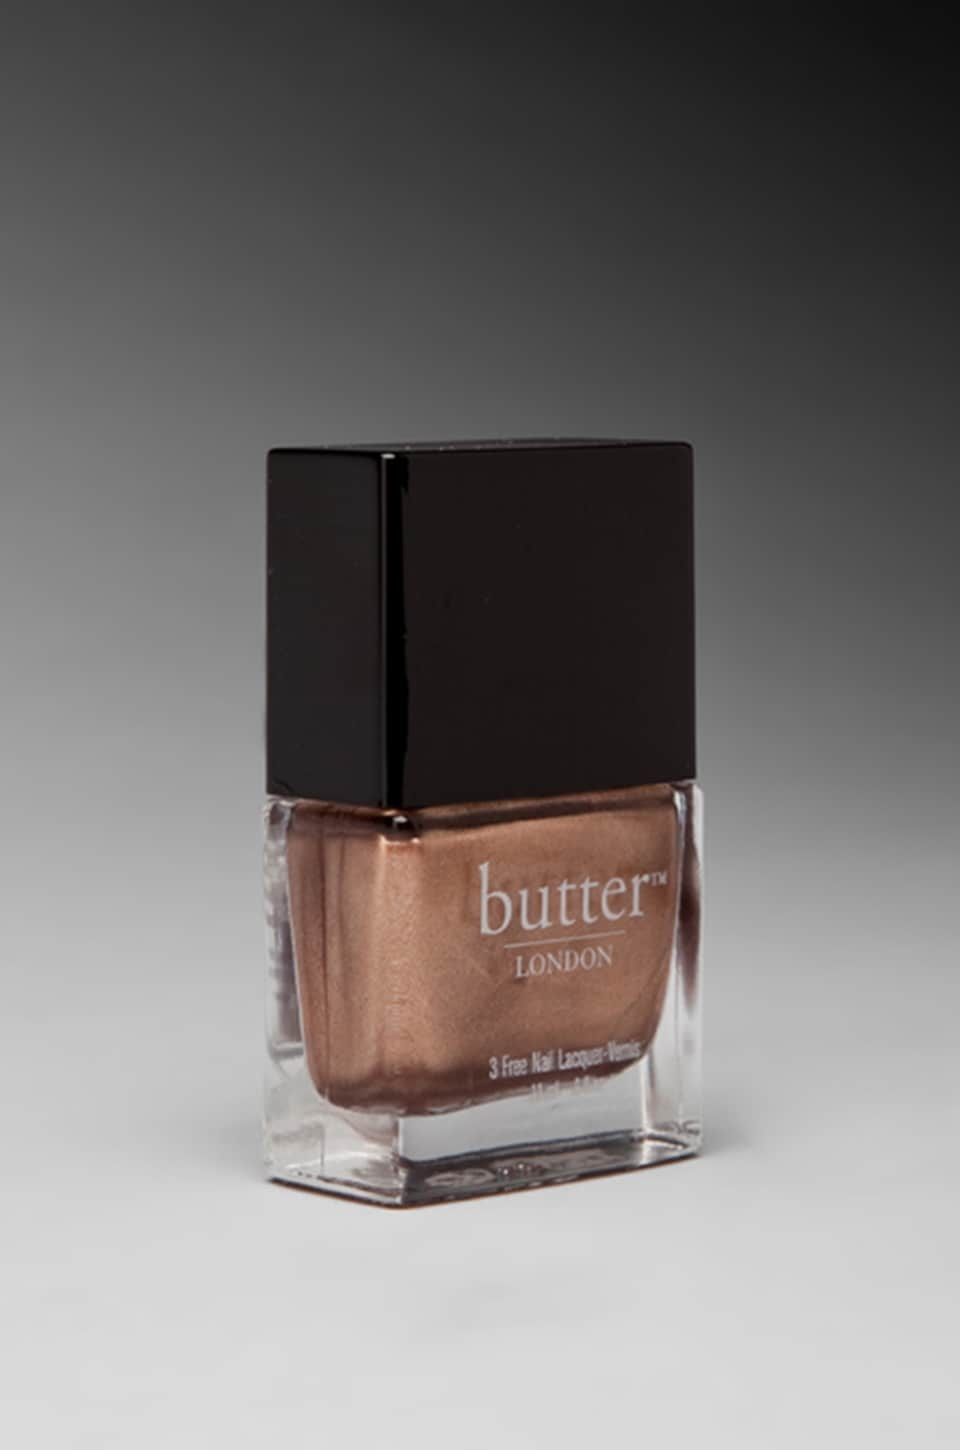 butter LONDON 3 Free Lacquer in The Old Bill